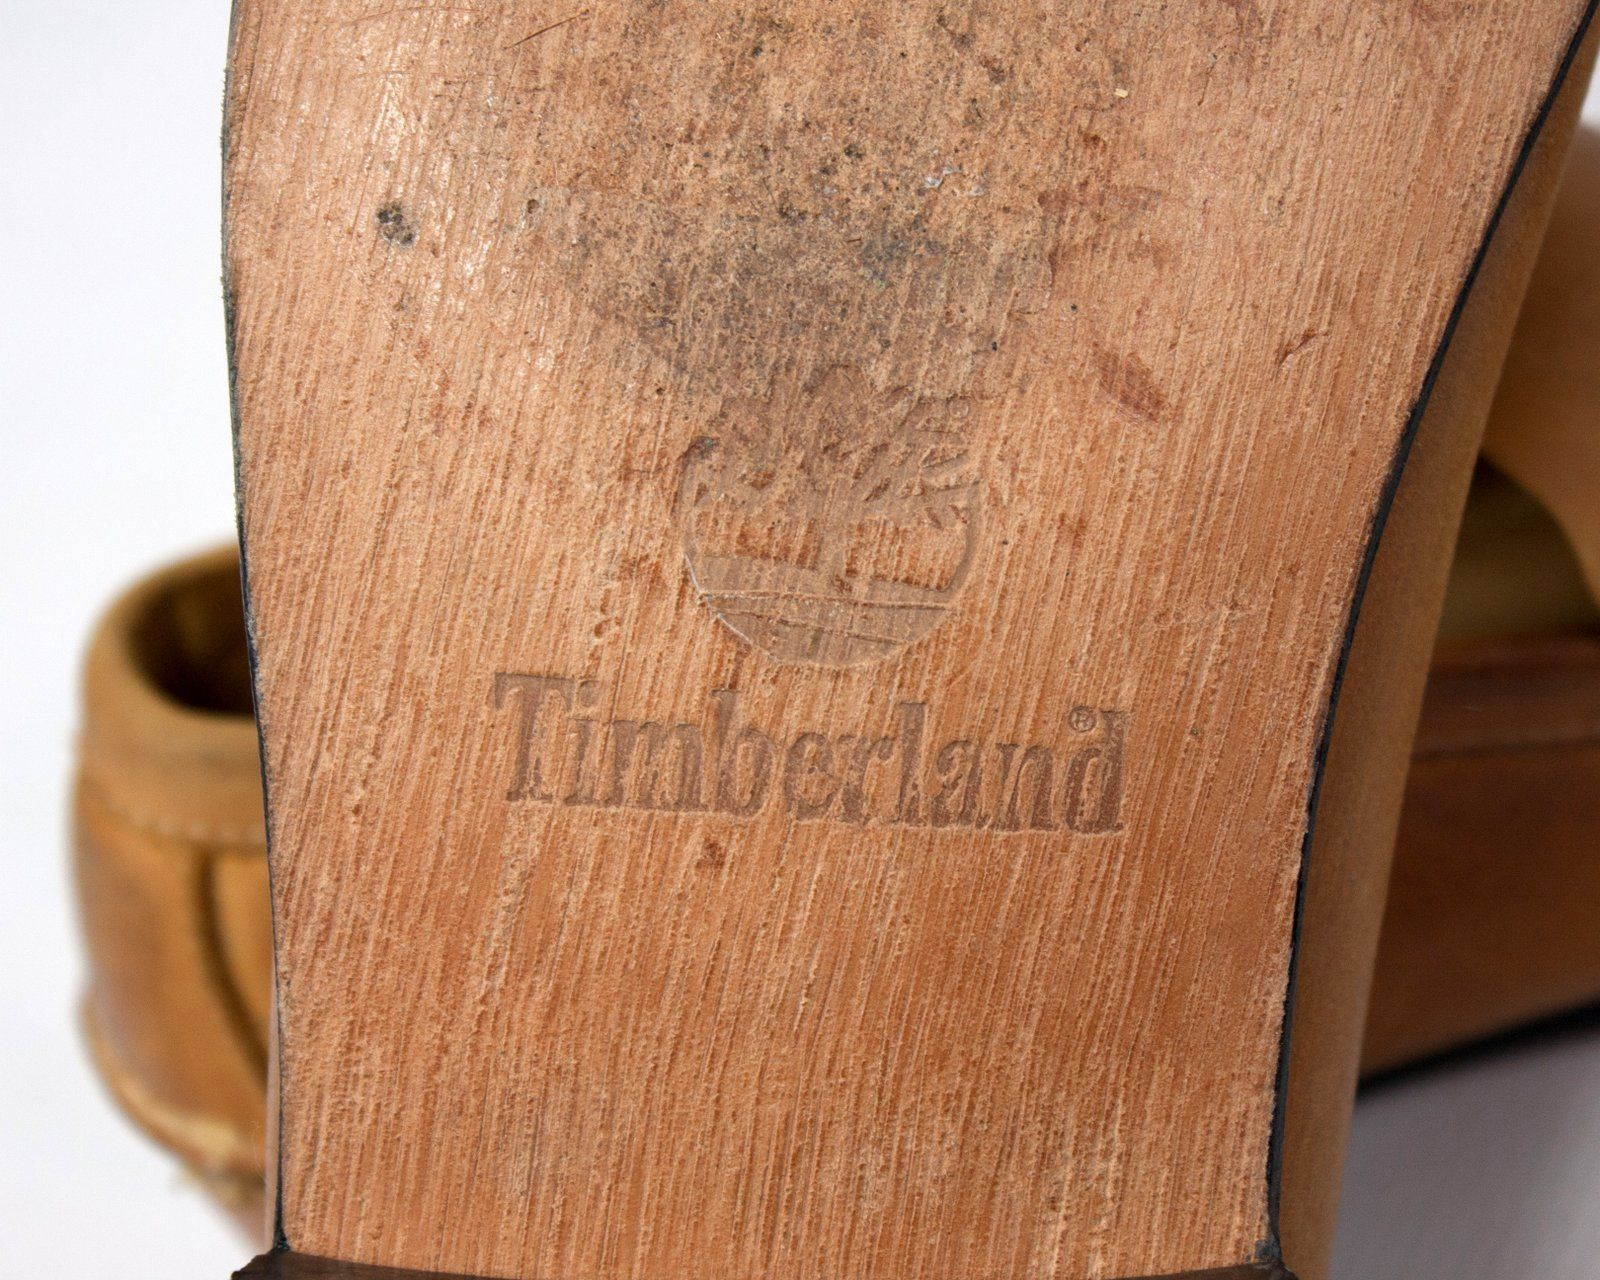 TIMBERLAND Men's Heritage Penny Loafer Shoes, UK 8.5/US 9/EU 41.5 - secondfirst